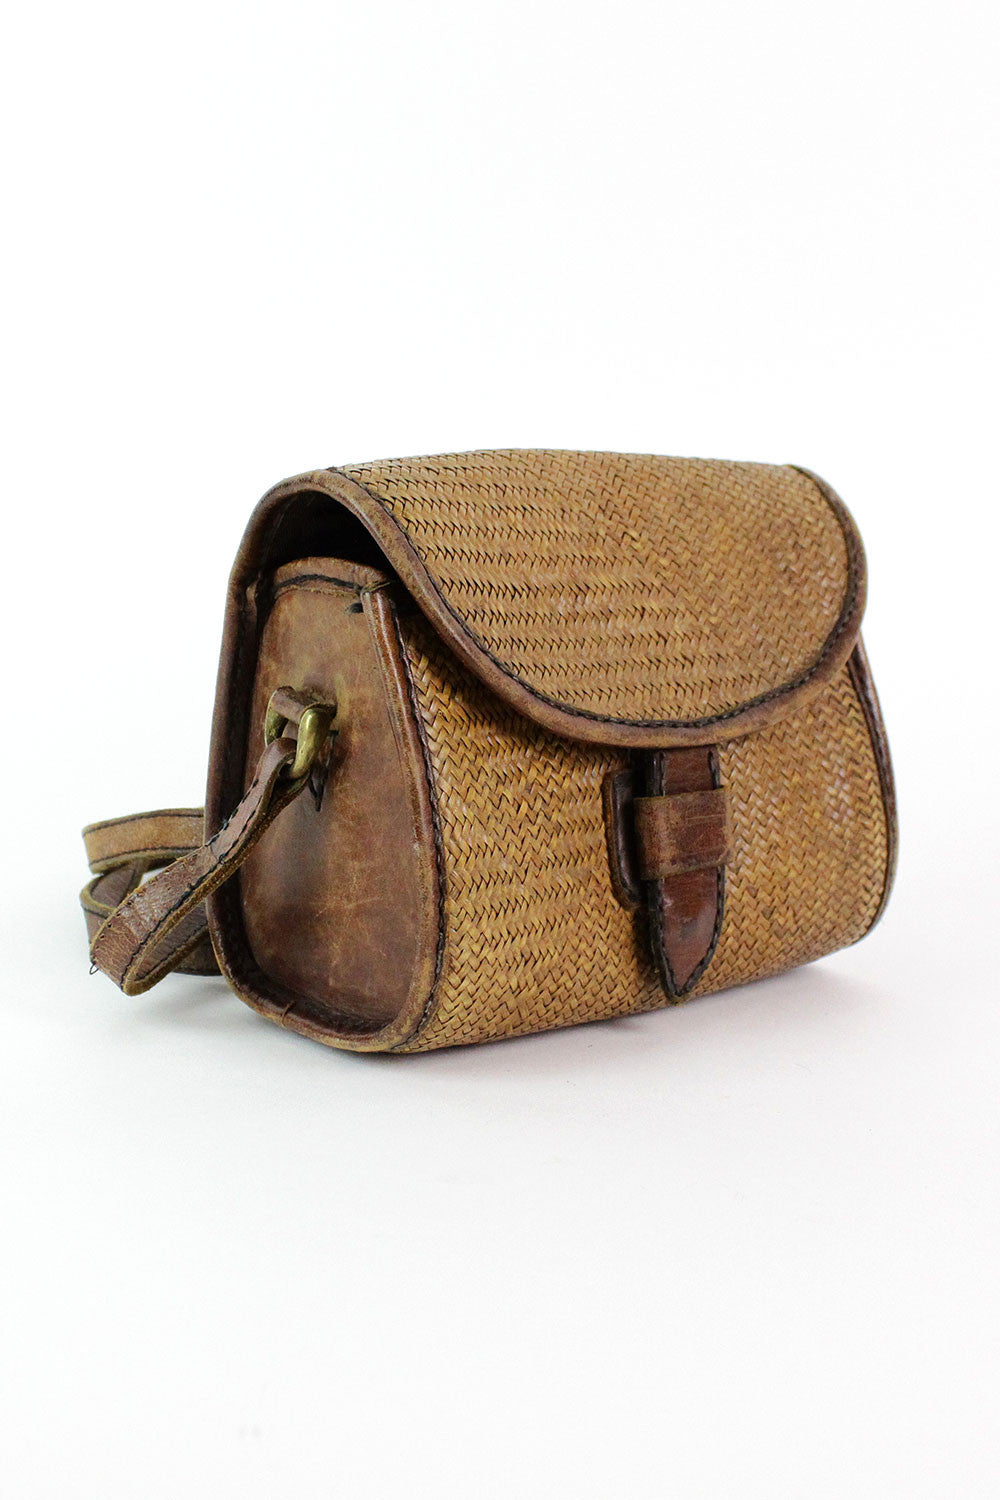 Barrel Straw Bag